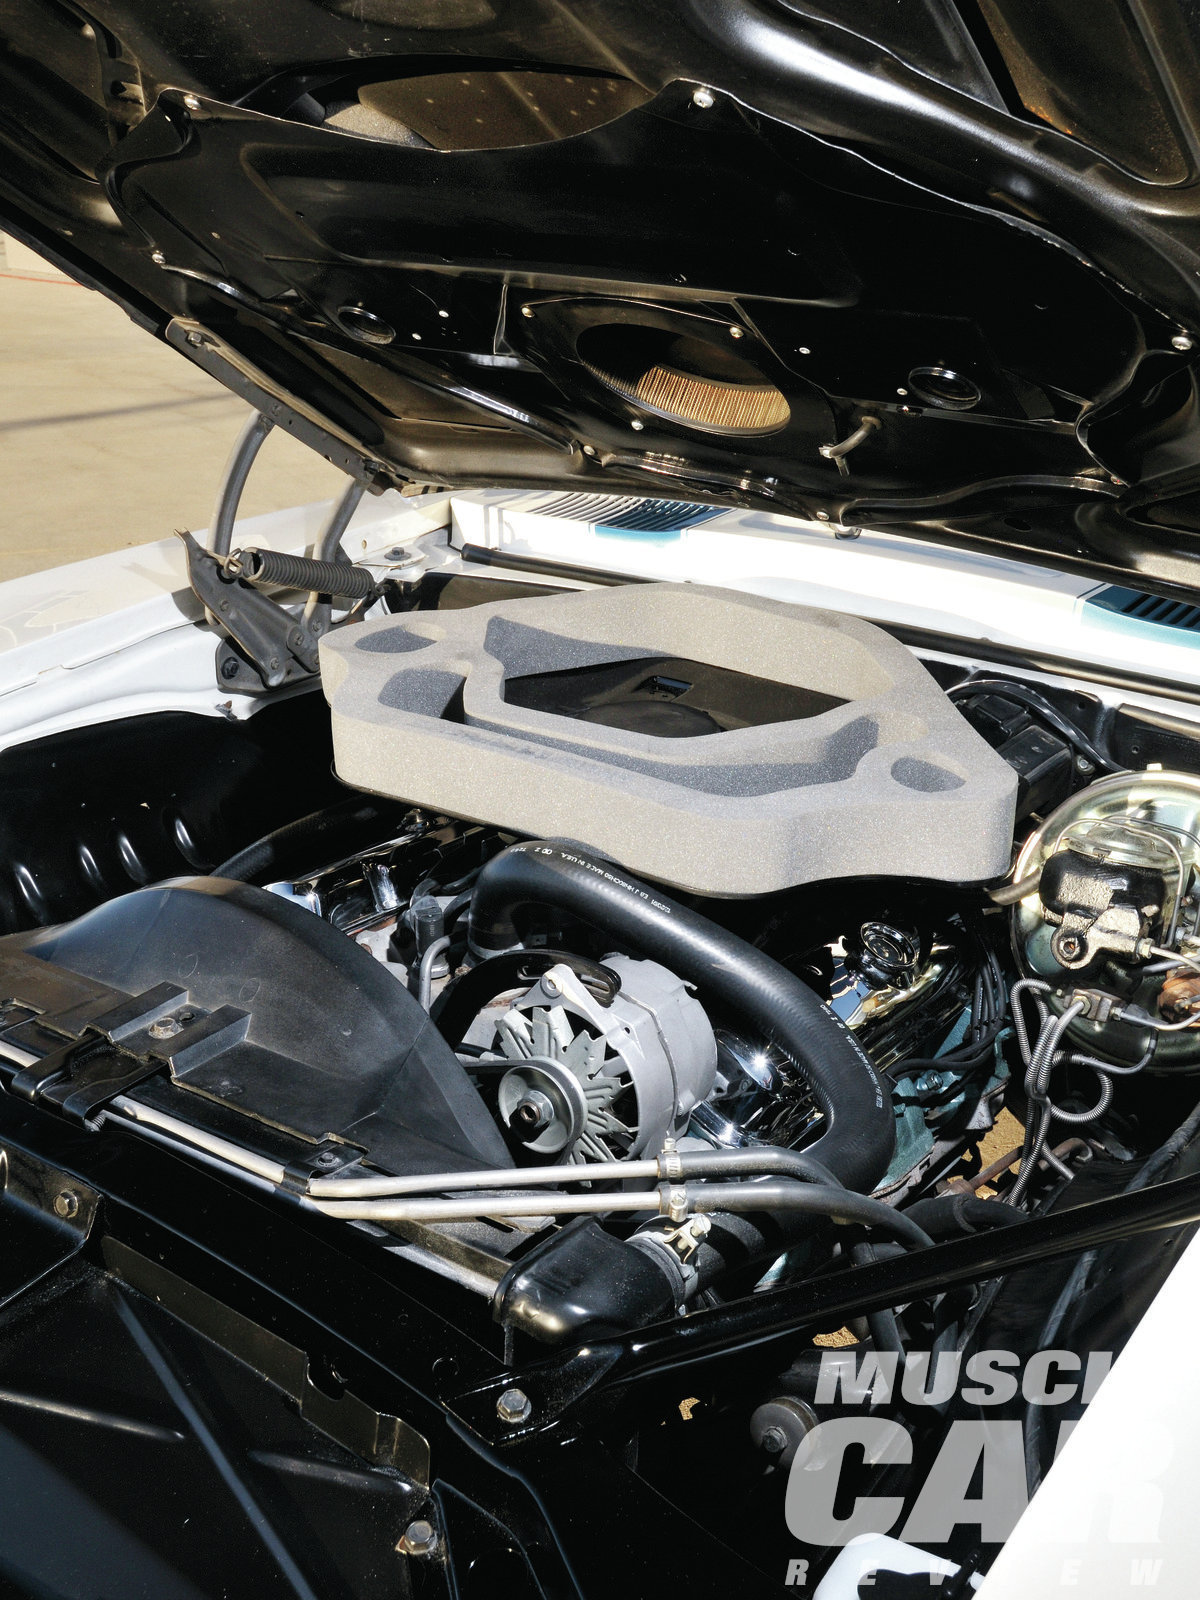 Foam around the air cleaner sealed the engine to the functional Ram Air scoops in the hood. Most Trans Ams were fitted with the 335hp Ram Air III engine; this is one of just 55 T/A coupes equipped with the more potent Ram Air IV mill.